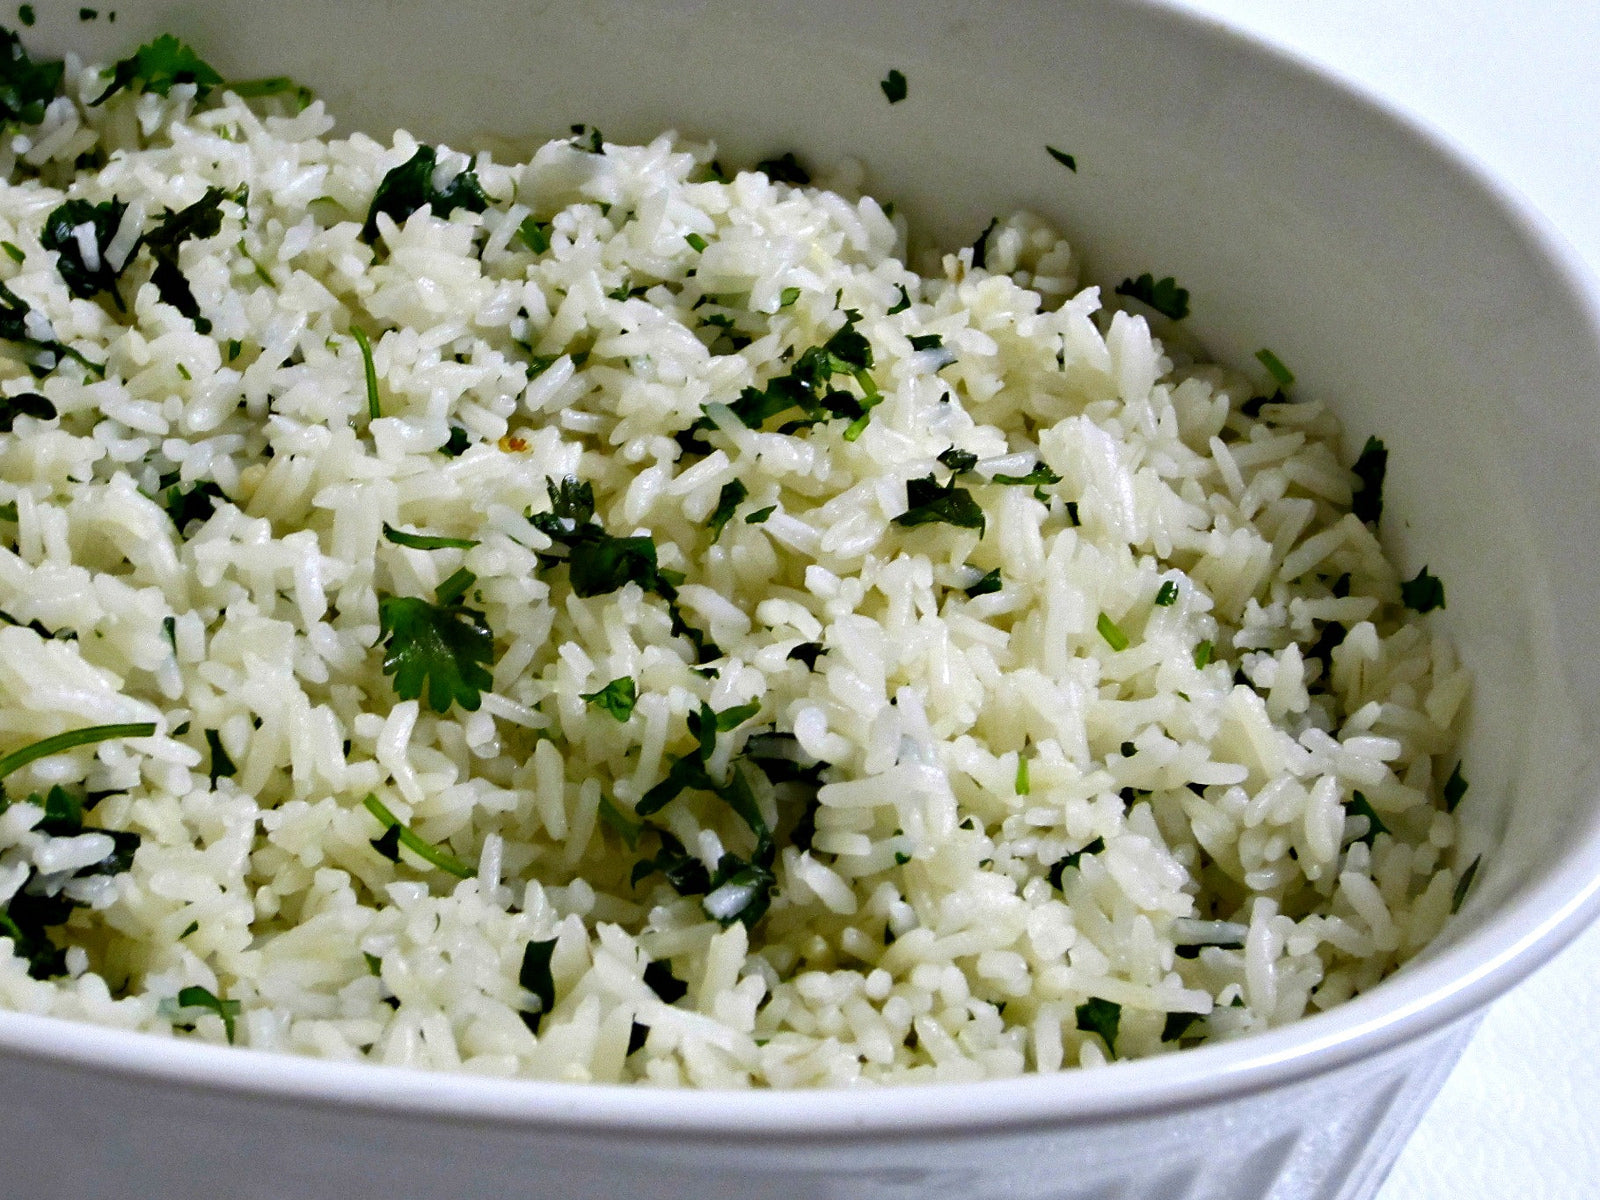 Make Chipotle-Style Citrus Rice in VitaClay!